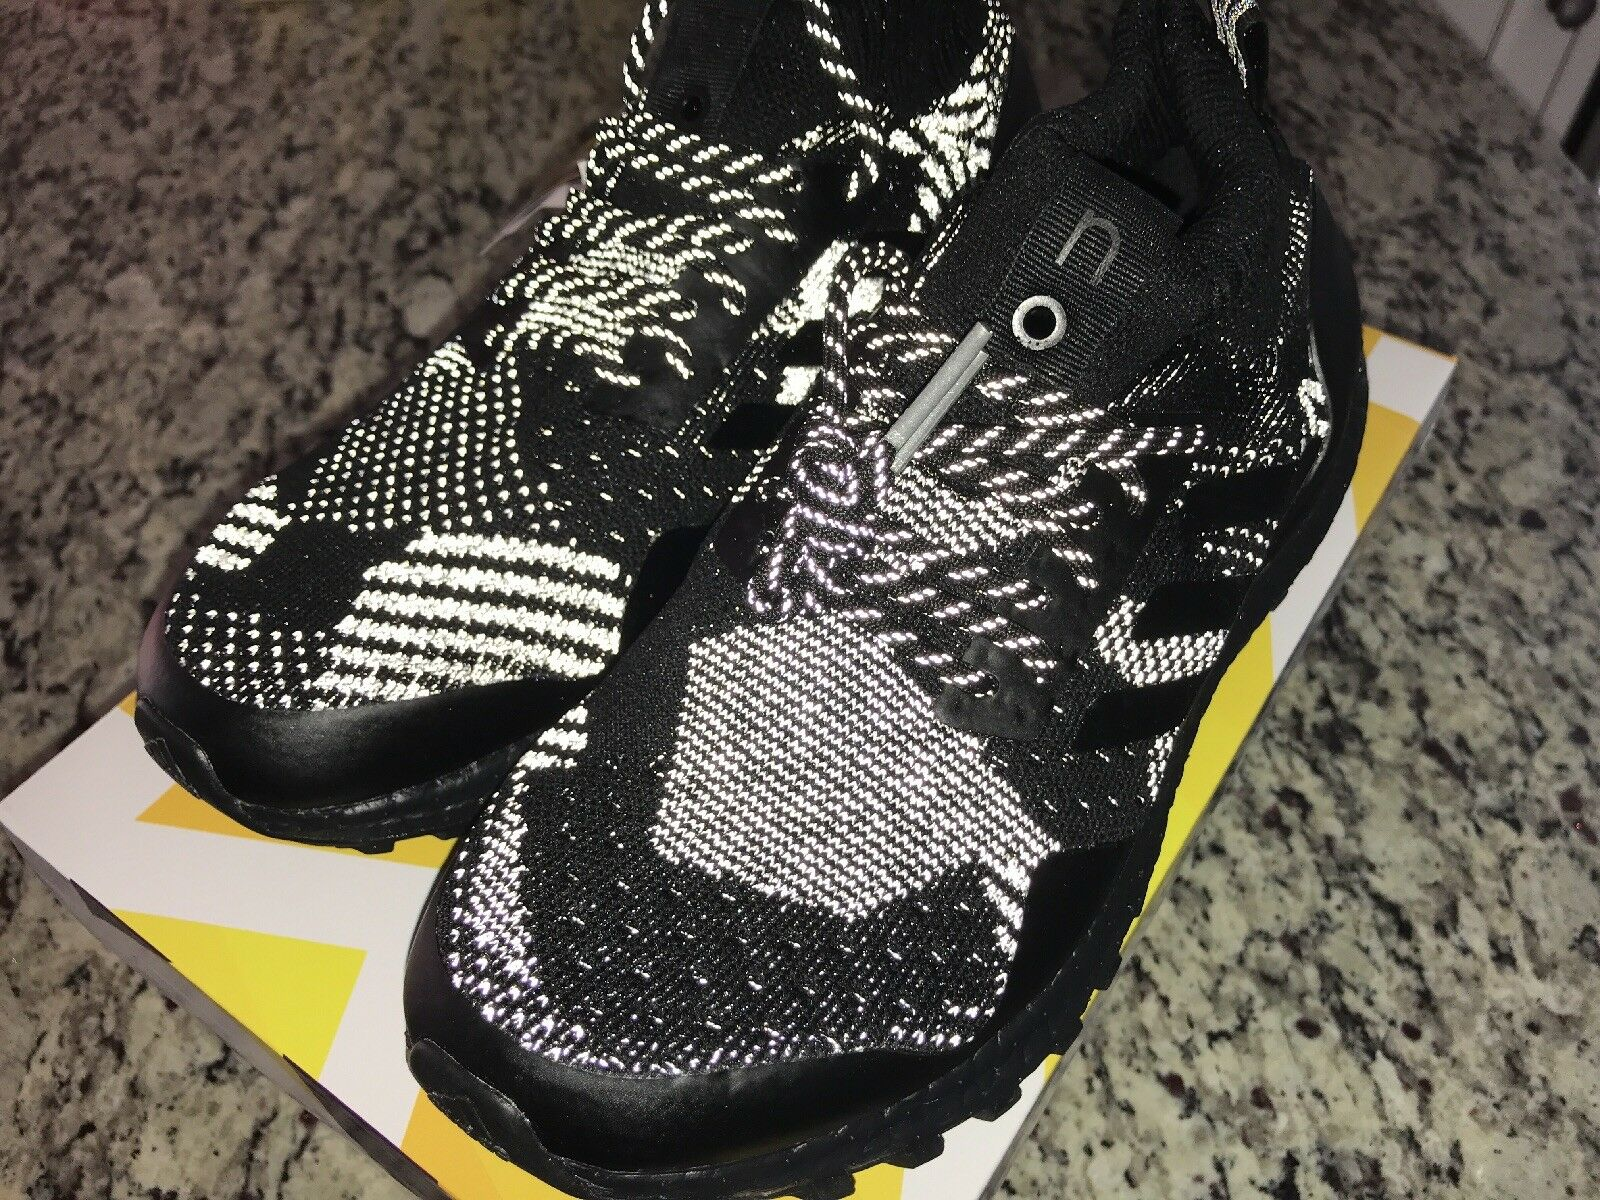 Adidas X Nonnative X Kith Ultraboost Mid Patchwork Size 6.5